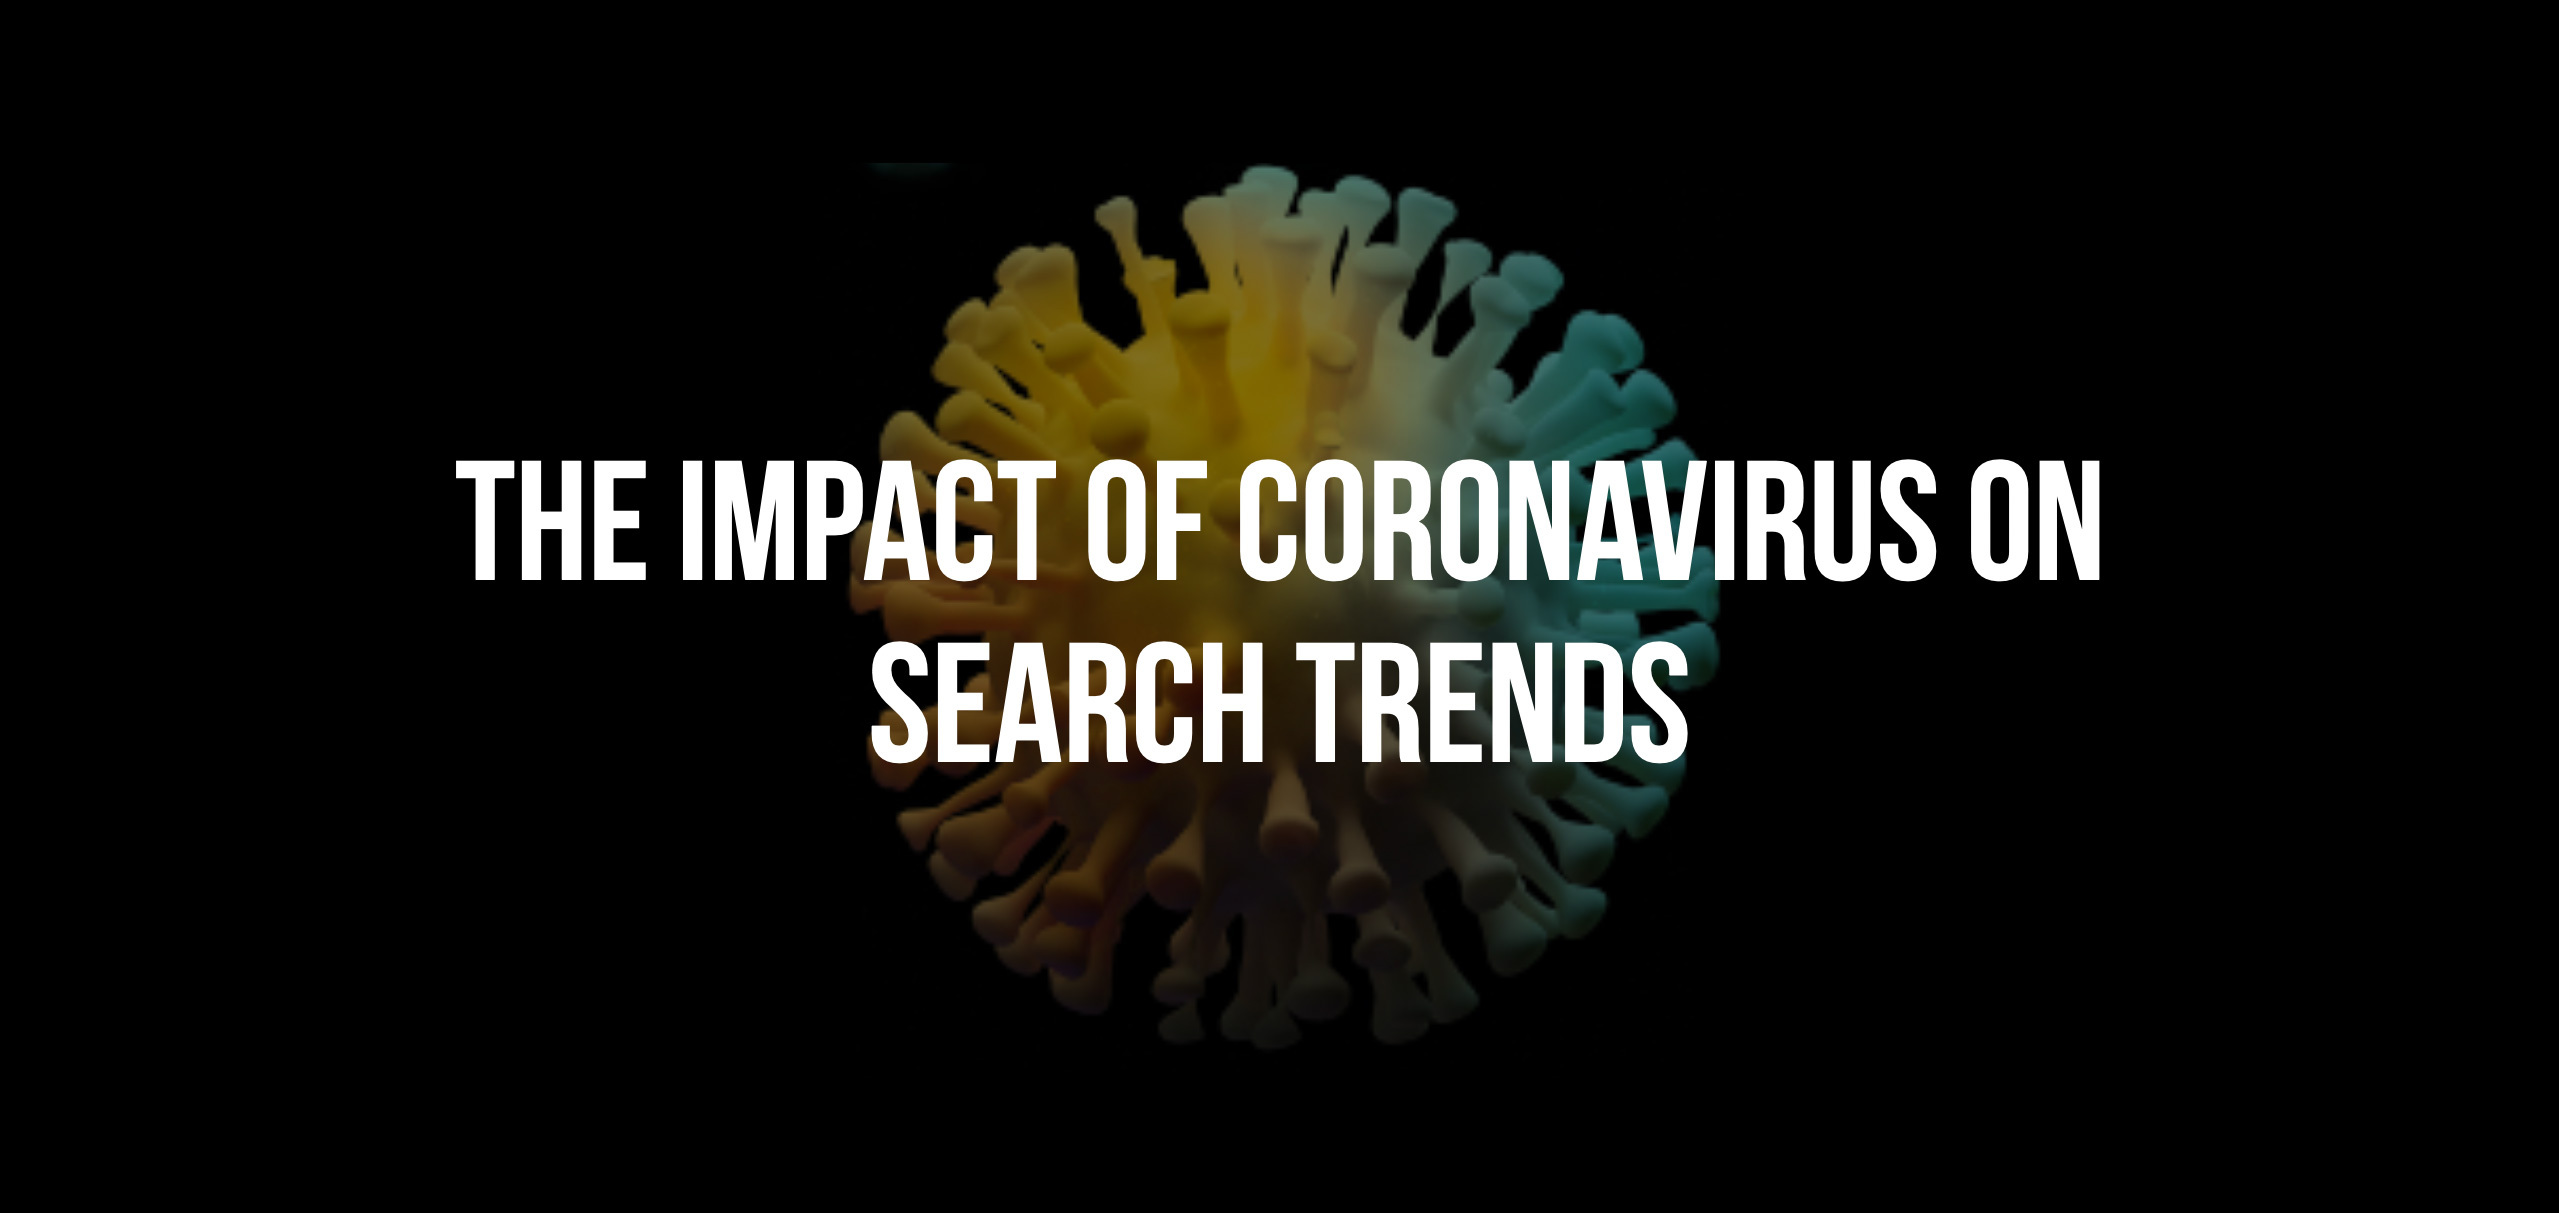 The Impact of The Coronavirus on Search Trends